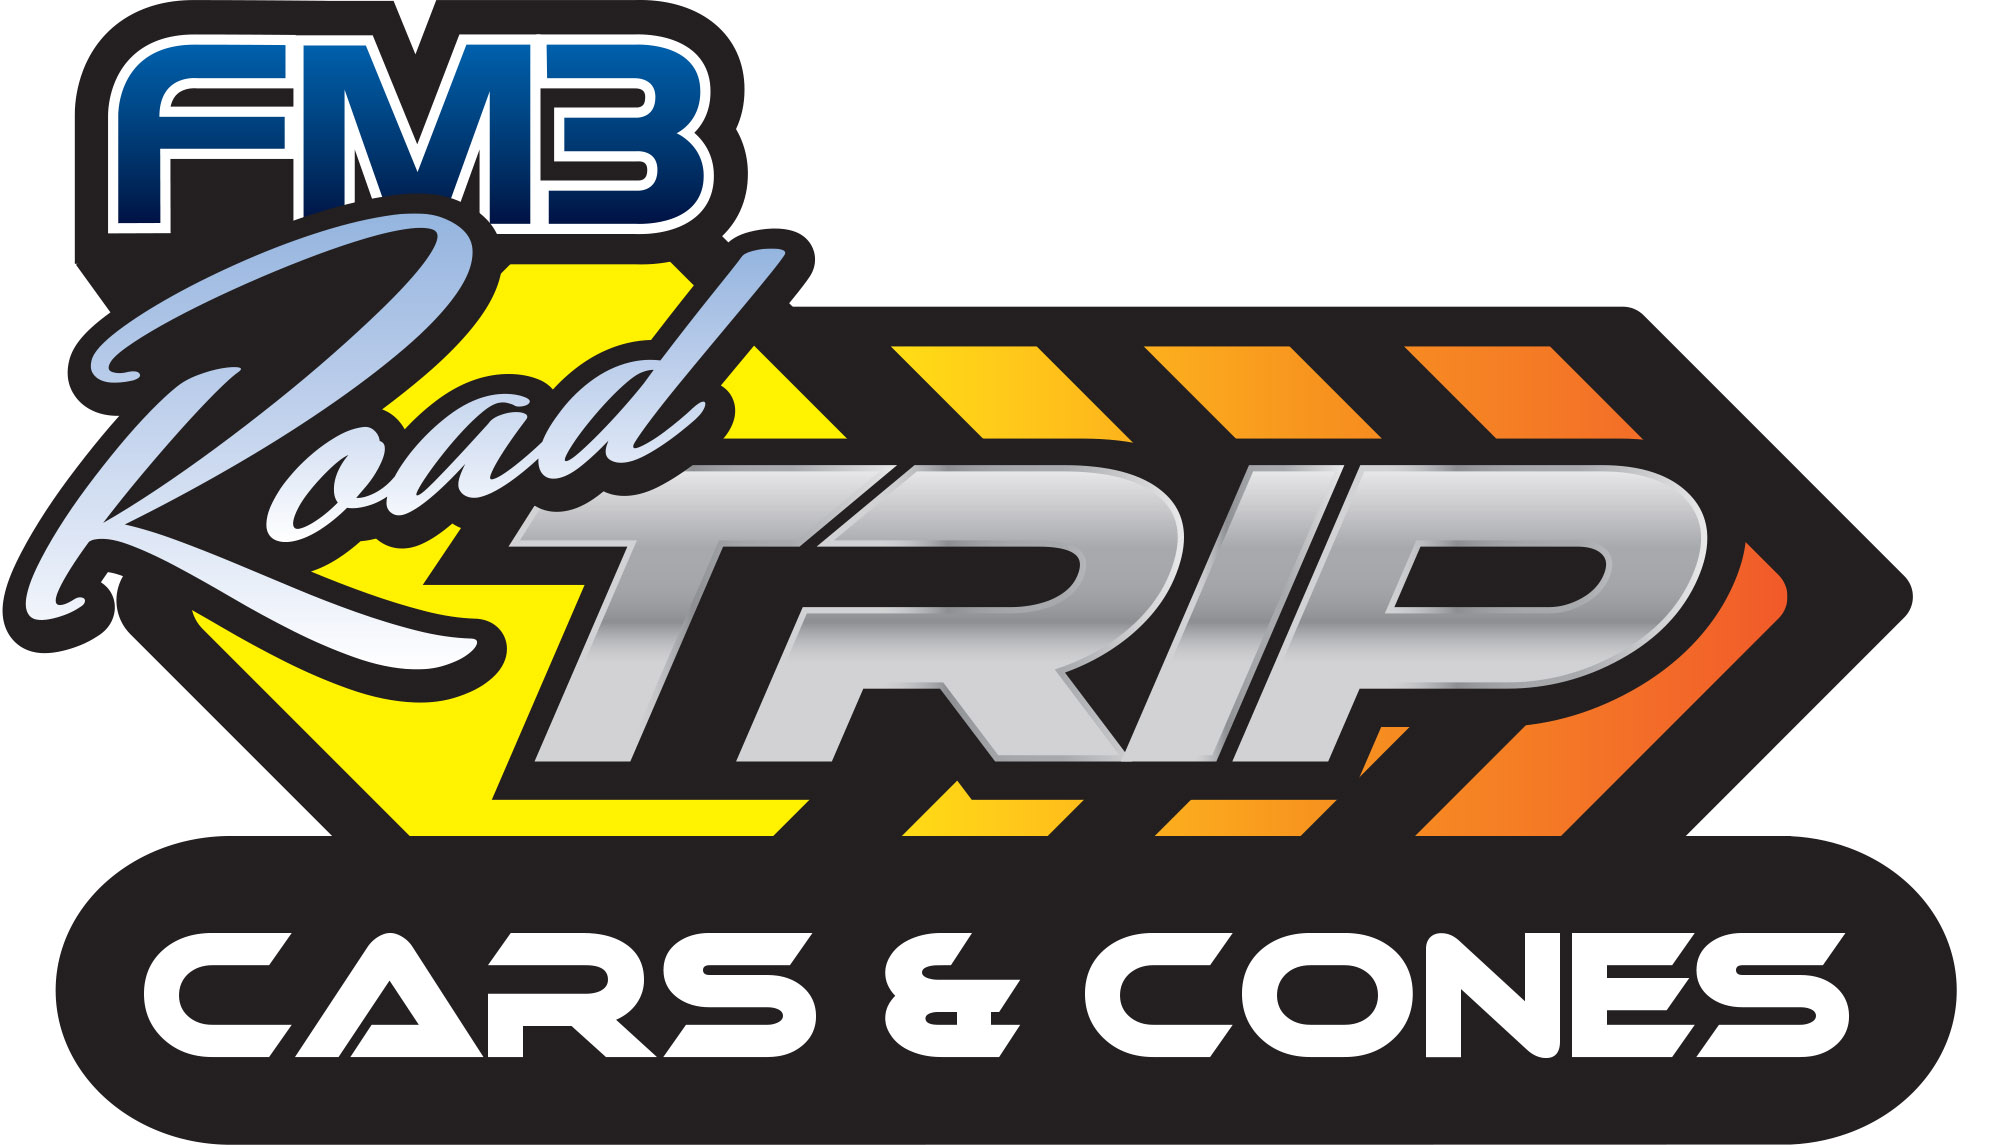 FM3 Road Trip: Cars And Cones FREE LIVE Streaming Coverage, Presented by RIDETECH Continues April 27th!